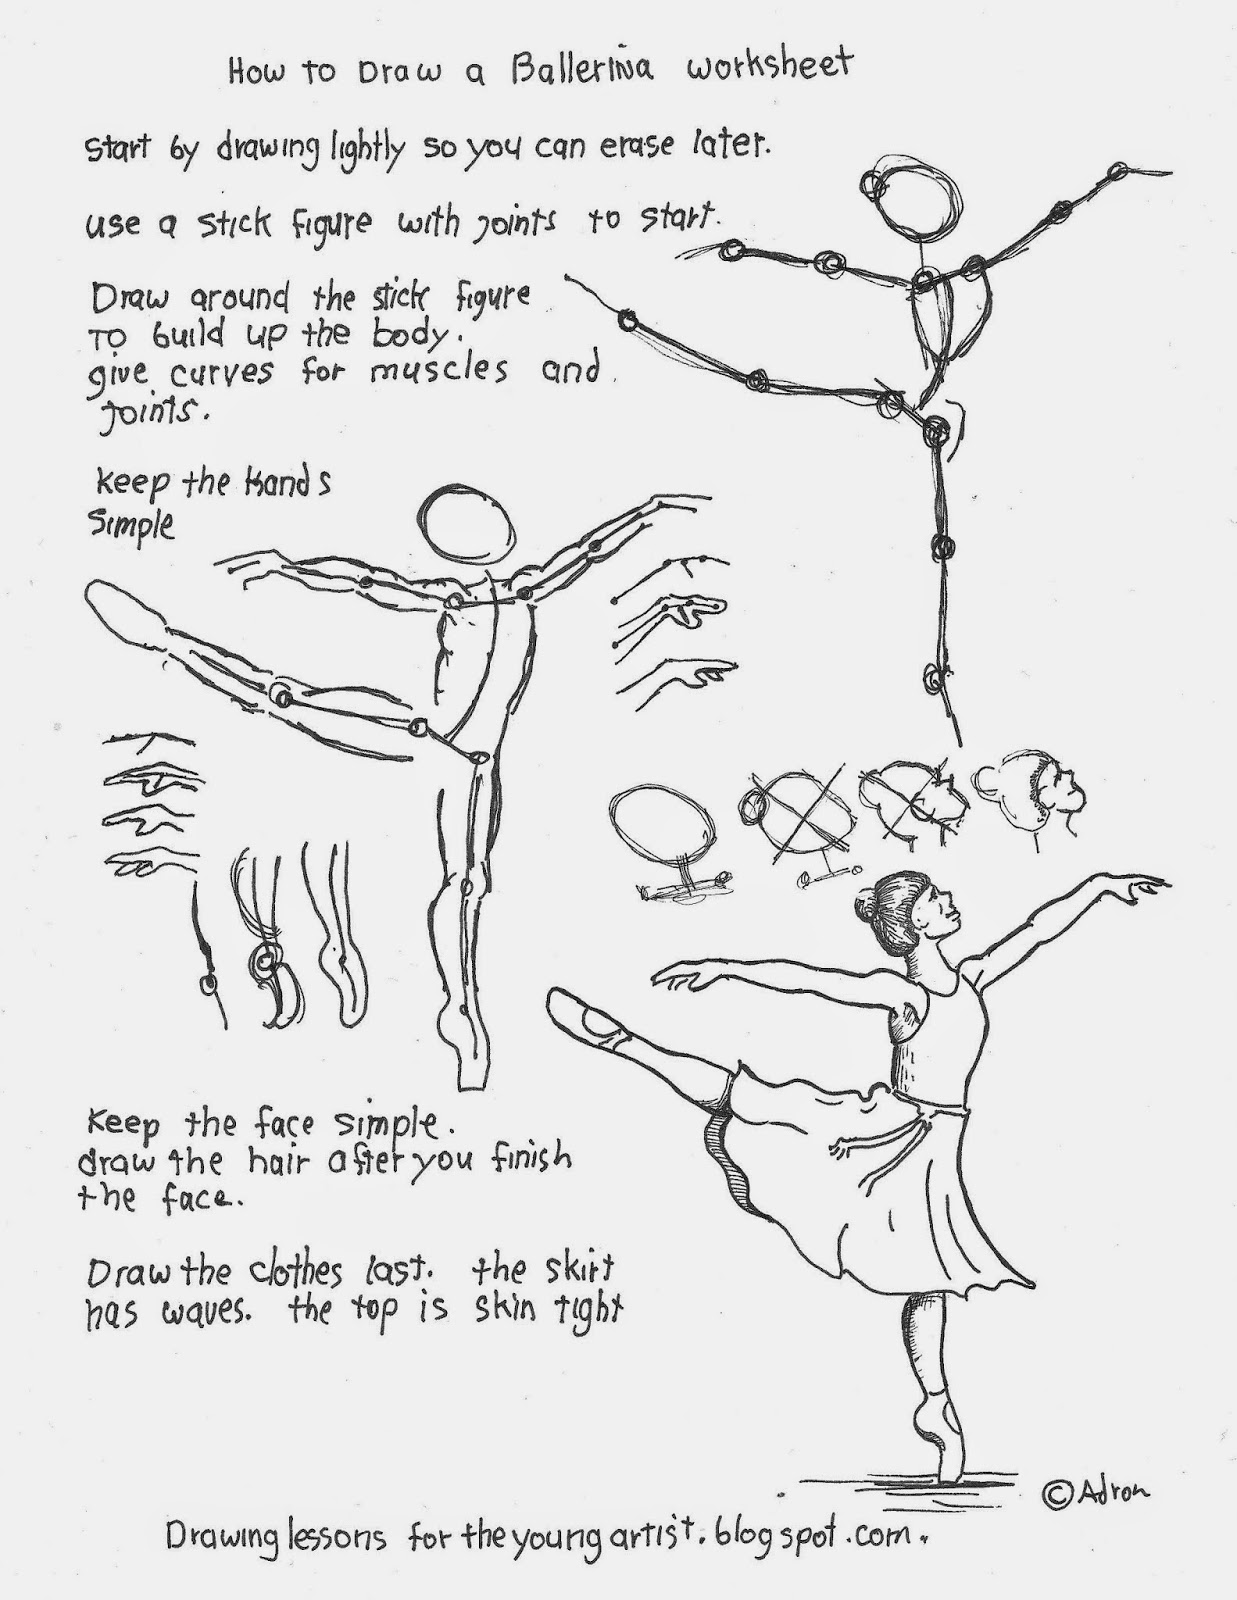 Drawing Lines In Cm Worksheet : How to draw worksheets for the young artist a